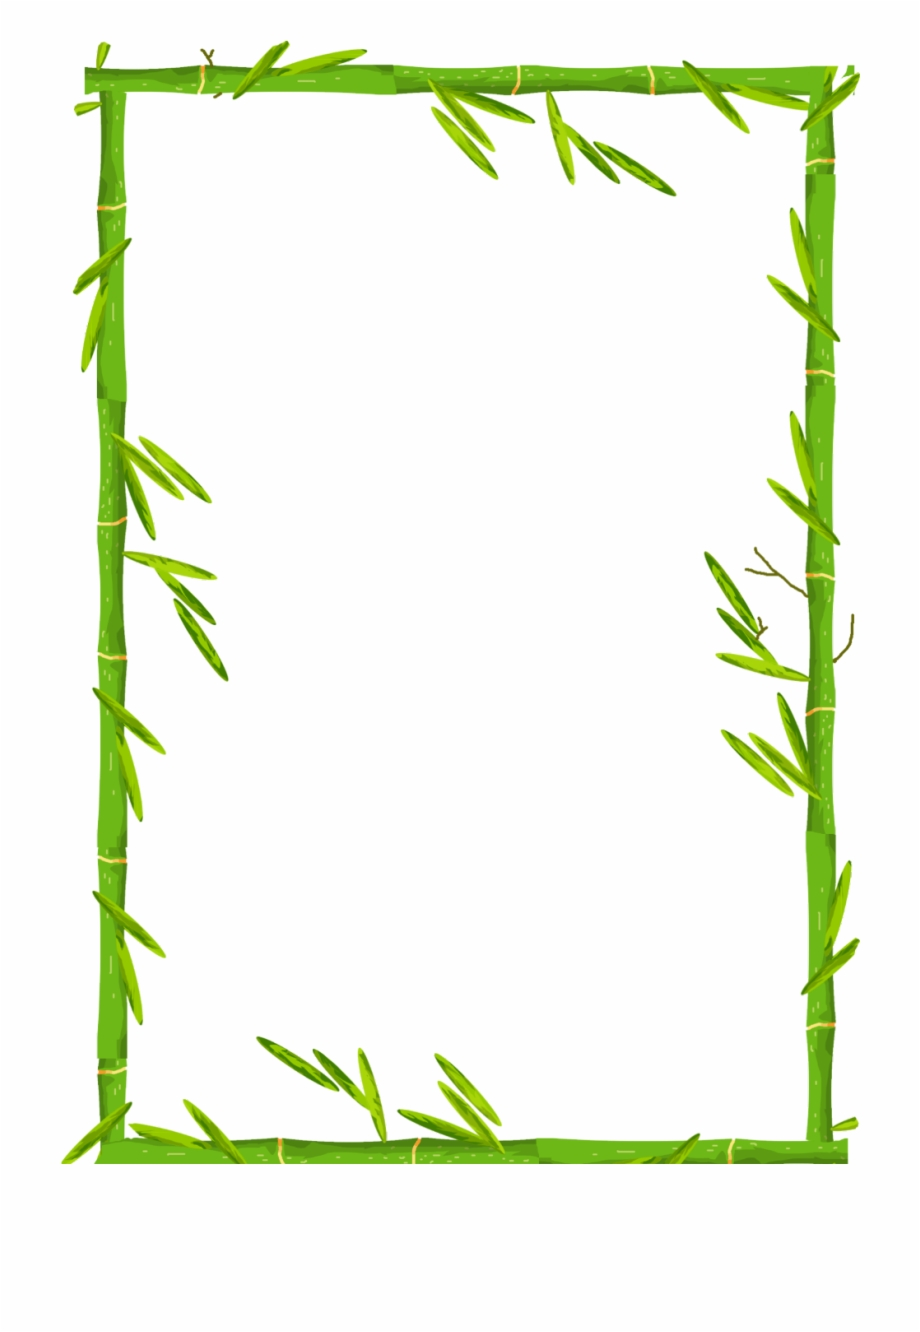 ftestickers #frame #borders #bamboo #green.